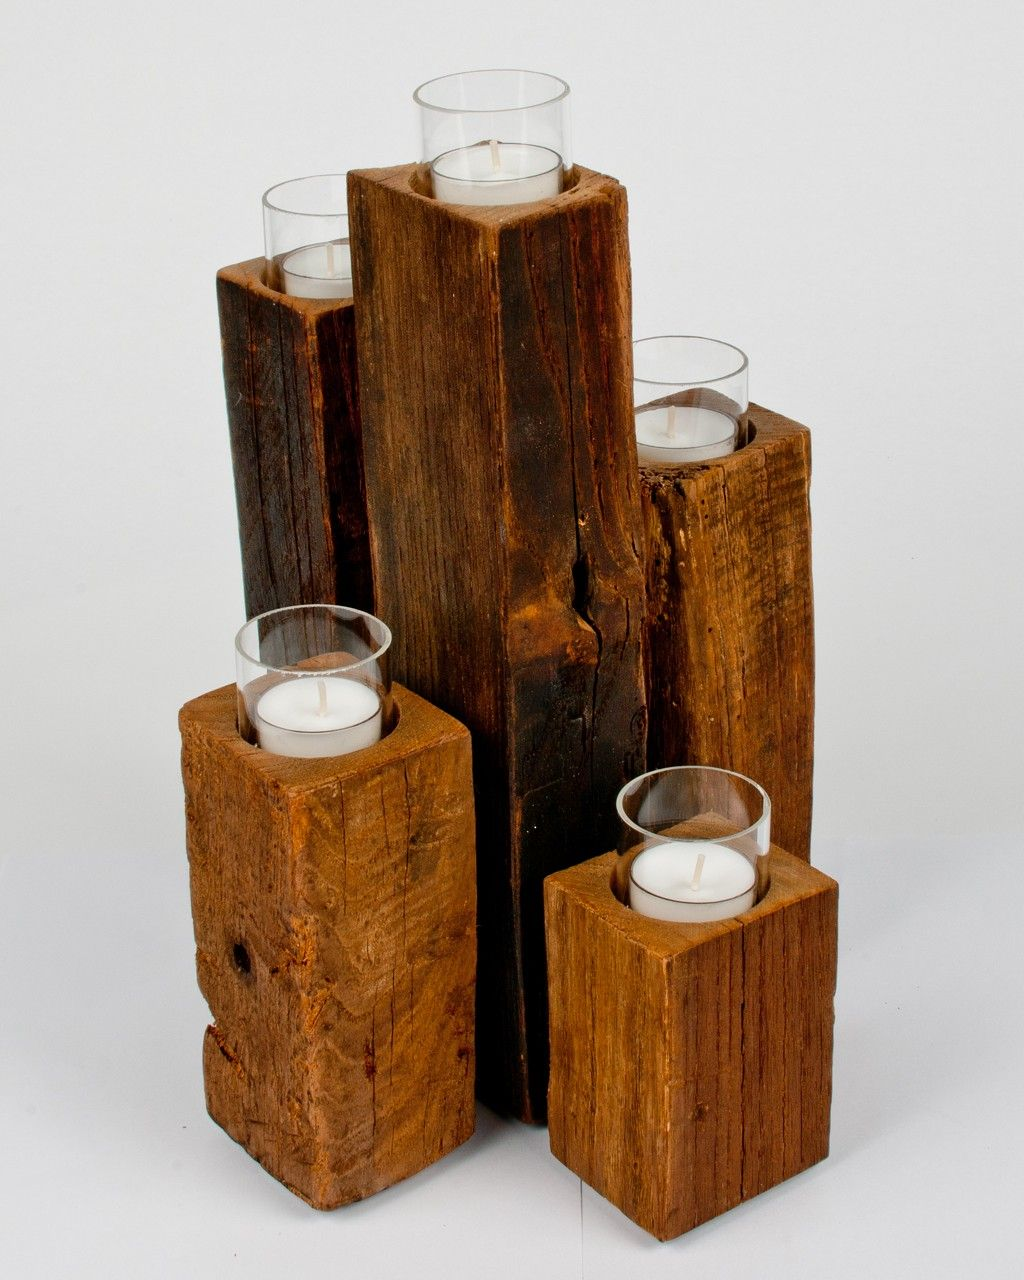 DIY Wood Candle Holders Cut some different lengths of posts .don't drill  holes for candles. they can just set on top. Some can even be layed down ...